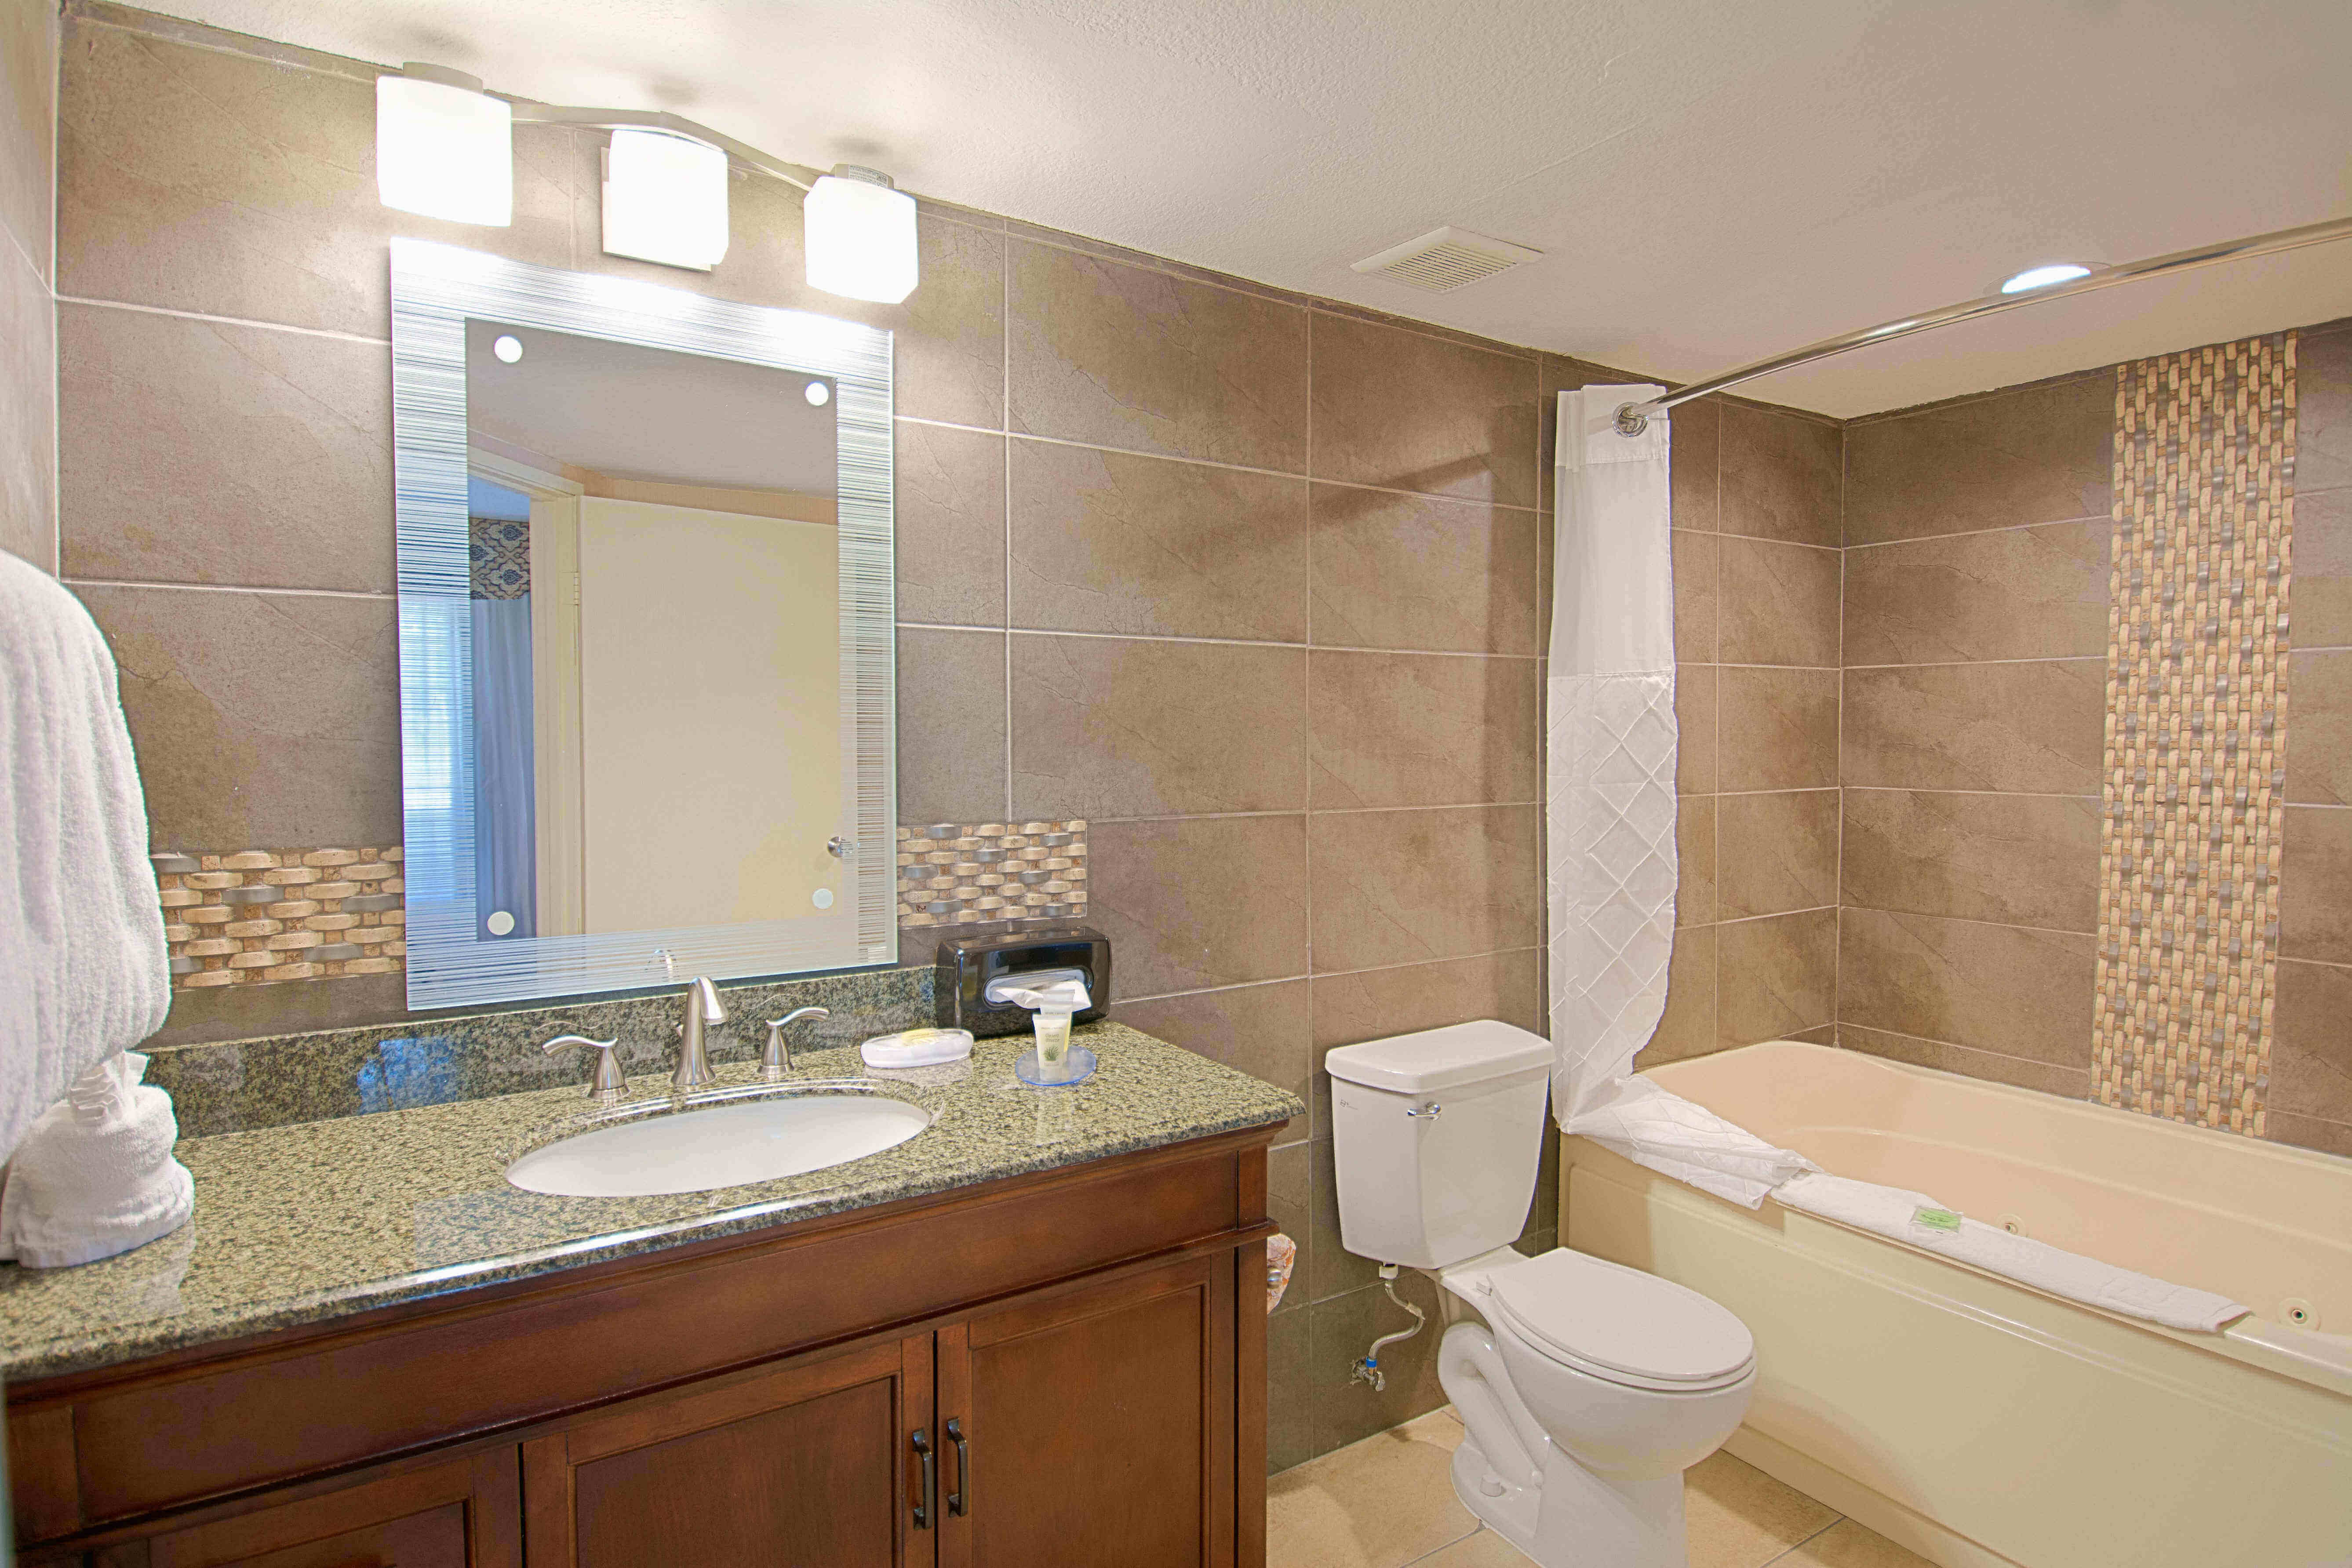 Bathroom_with_Jetted_Tub_RM_350_2.jpg